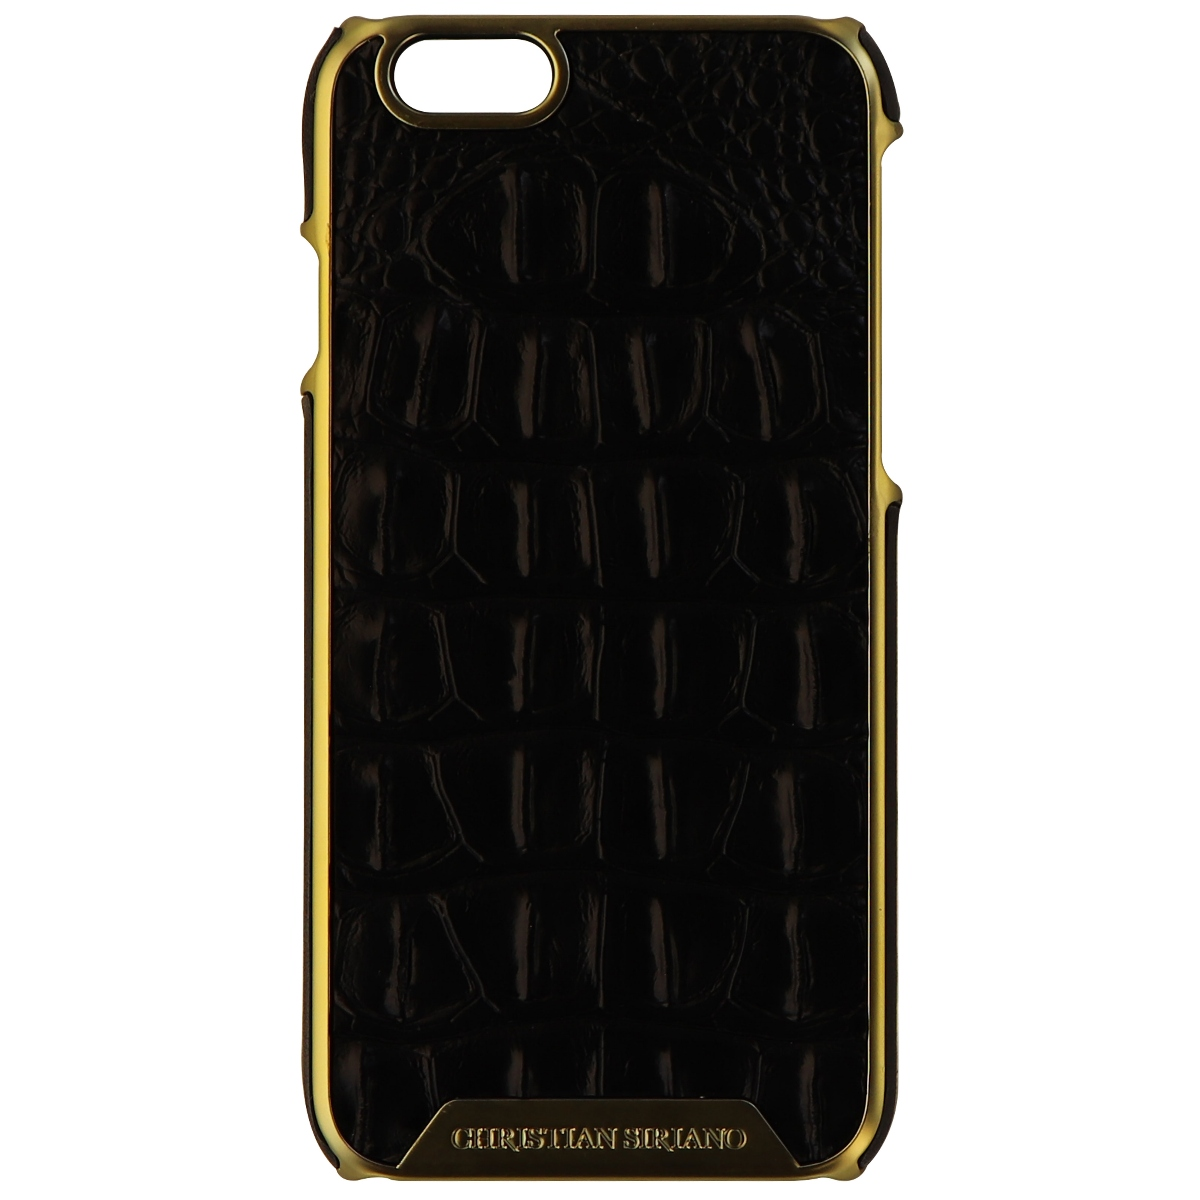 Christian Siriano Hardshell Wrapped Case for iPhone 6s 6 - Alligator/Black/Gold